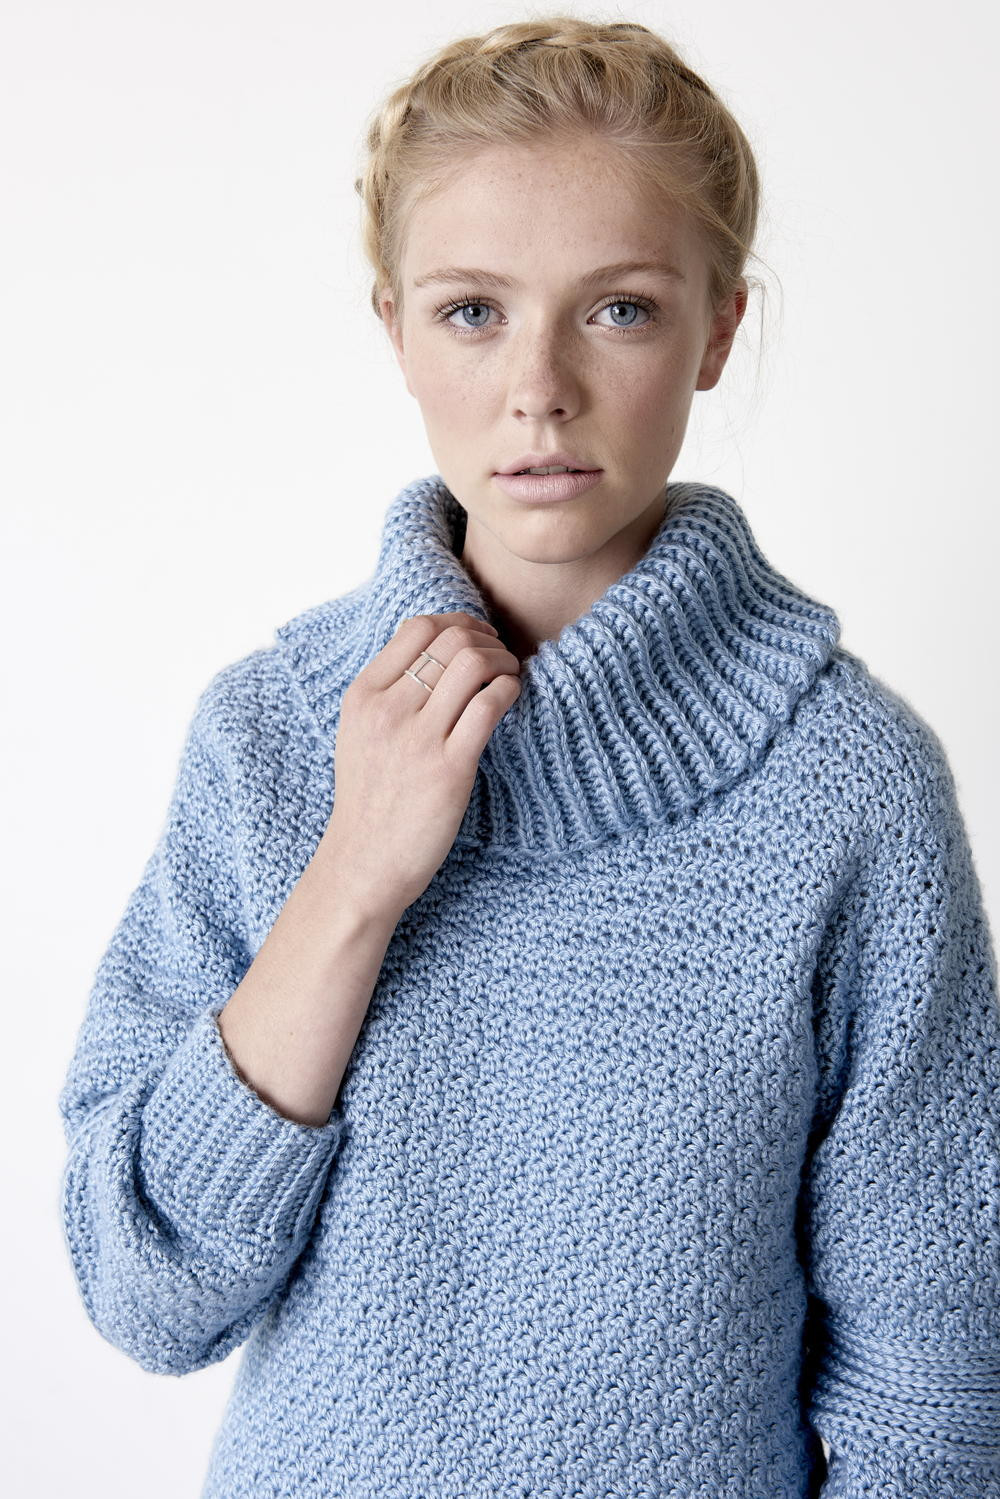 Crochet Sweaters Inspirational Over Easy Cowl Neck Pullover Of Fresh 50 Images Crochet Sweaters